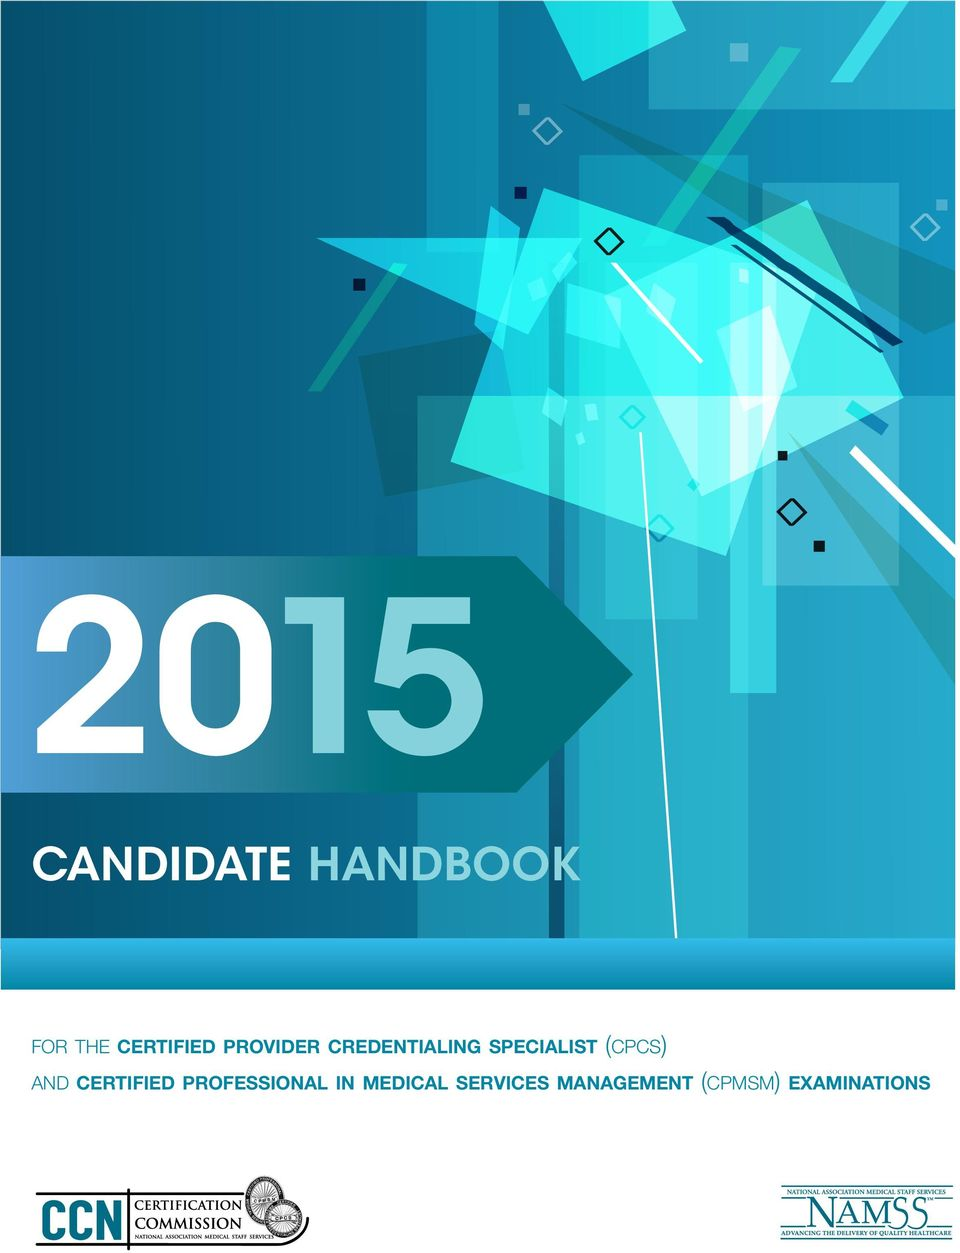 Candidate Handbook For The Certified Provider Credentialing